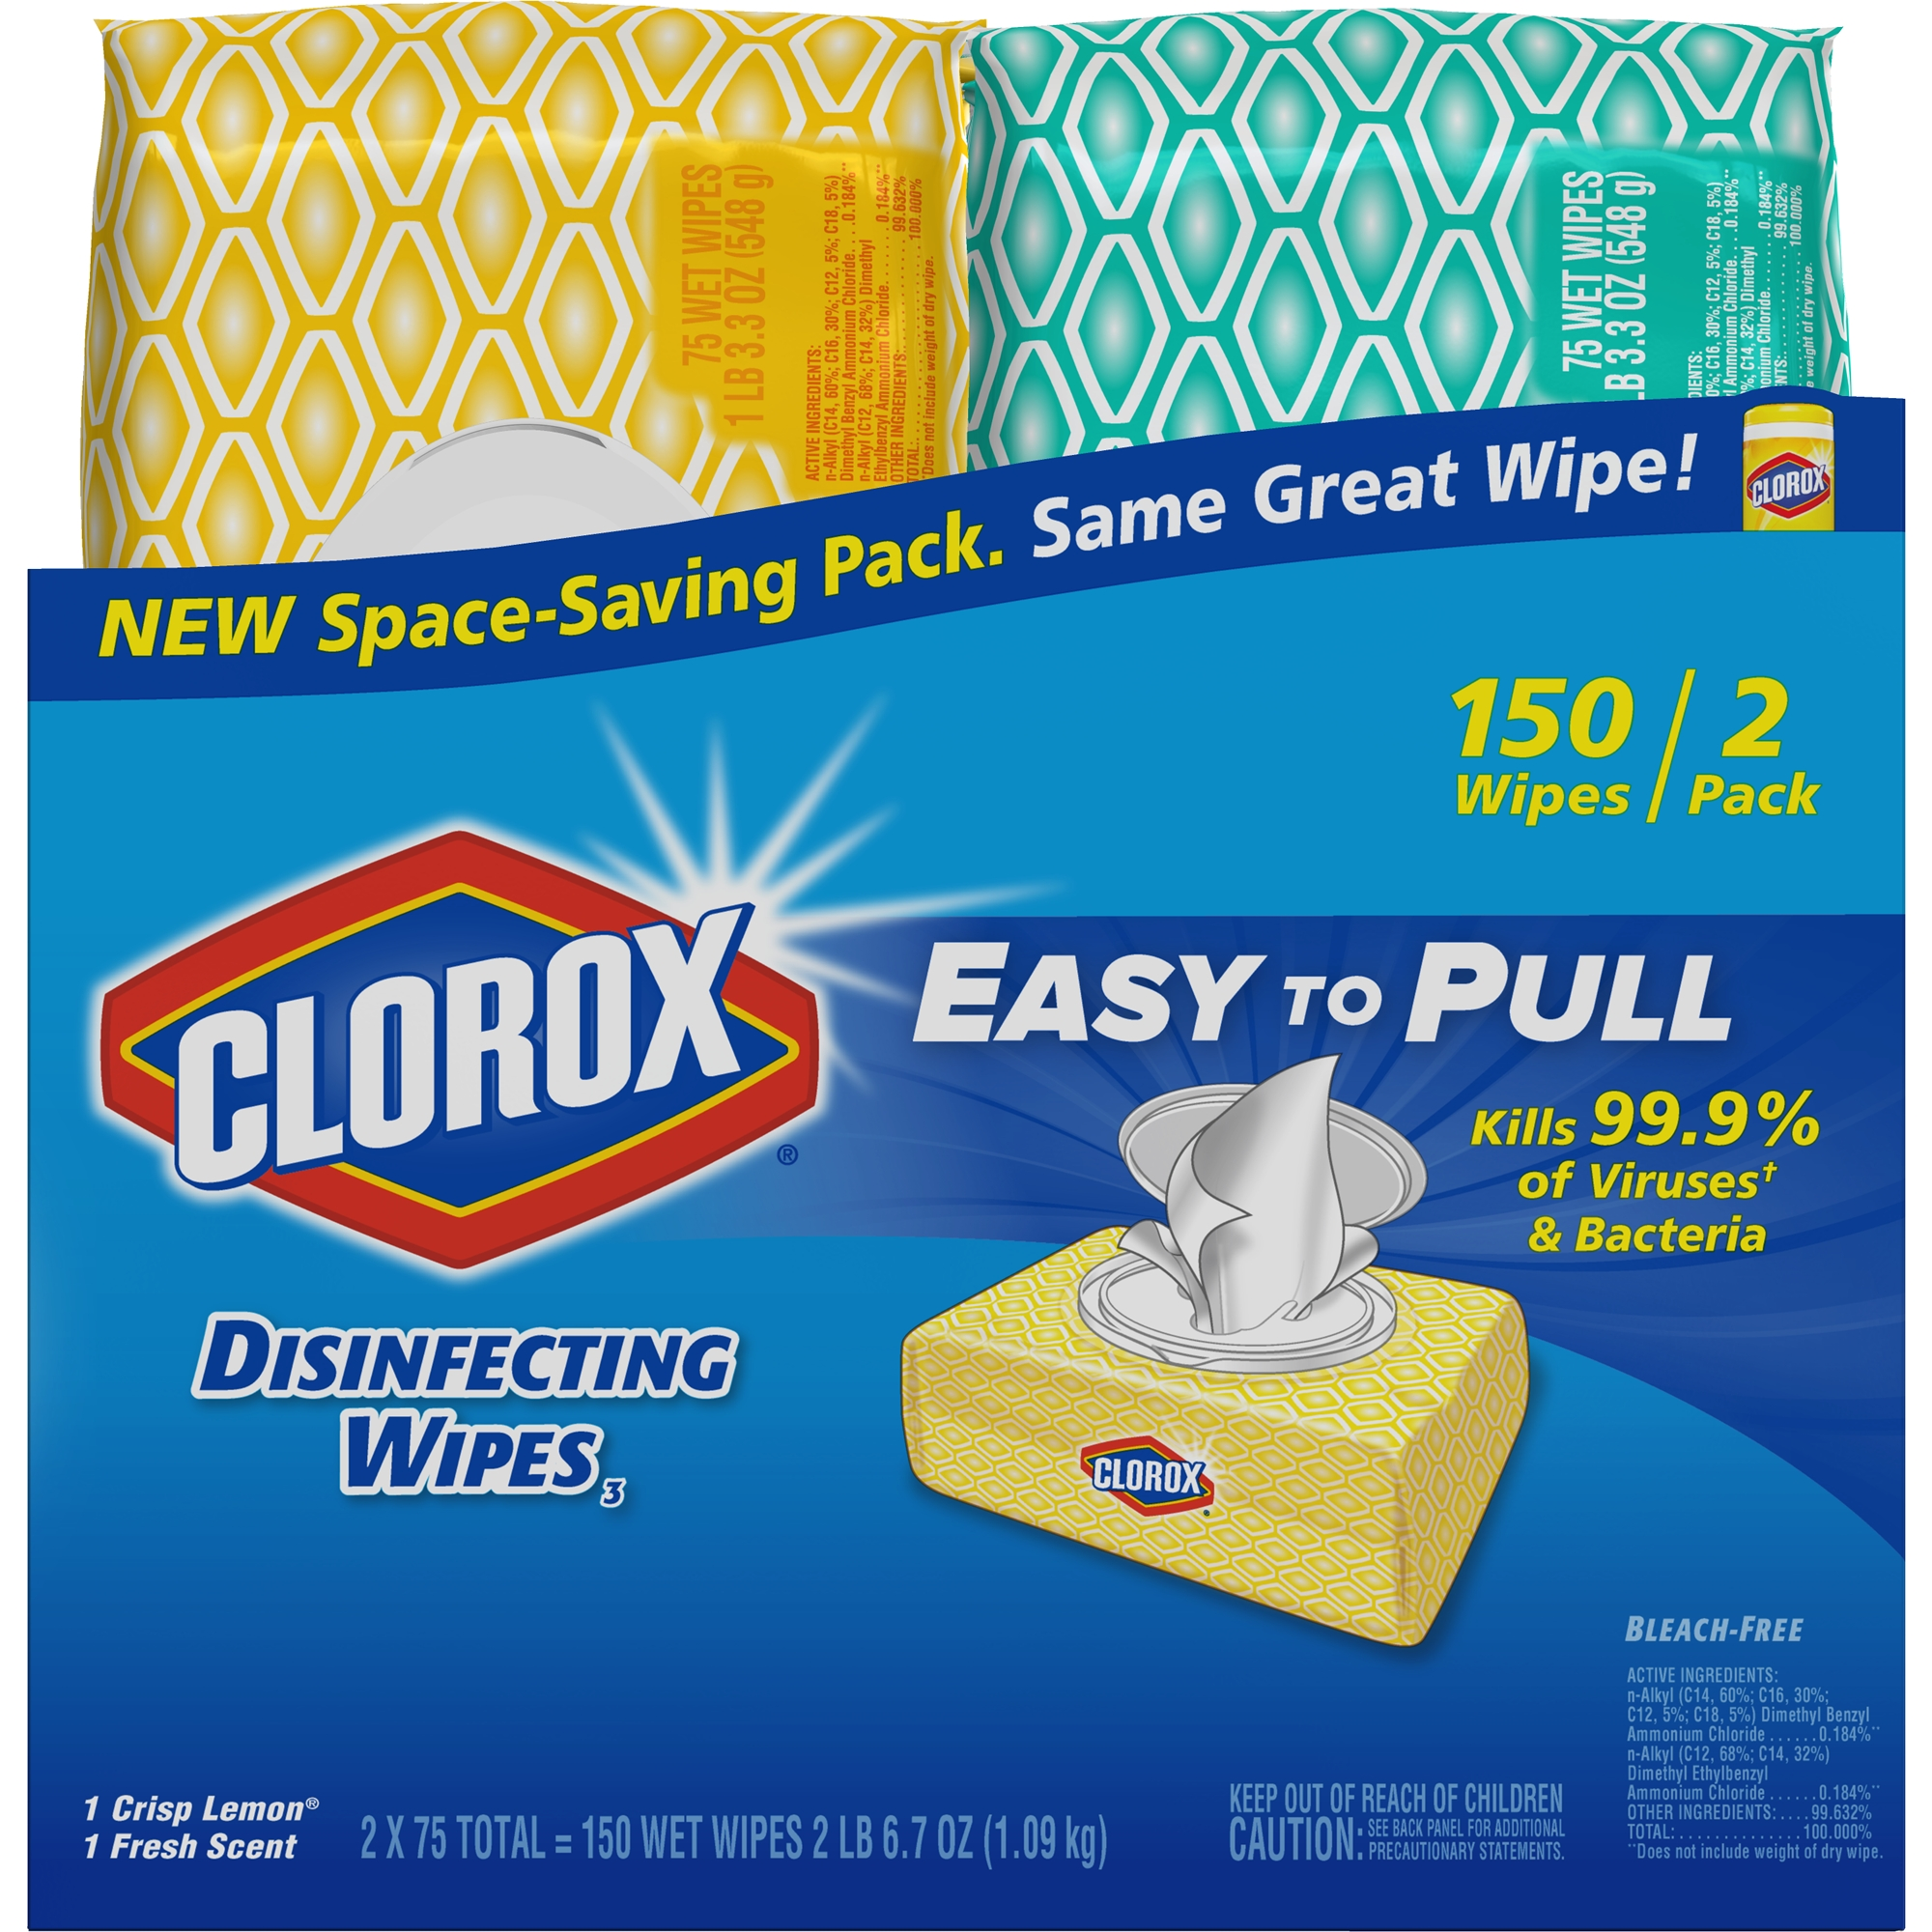 Clorox Disinfecting Wipes, 2 Soft Packs, (150 ct) Bleach Free Cleaning Wipes - 1 Crisp Lemon and 1 Fresh Scent